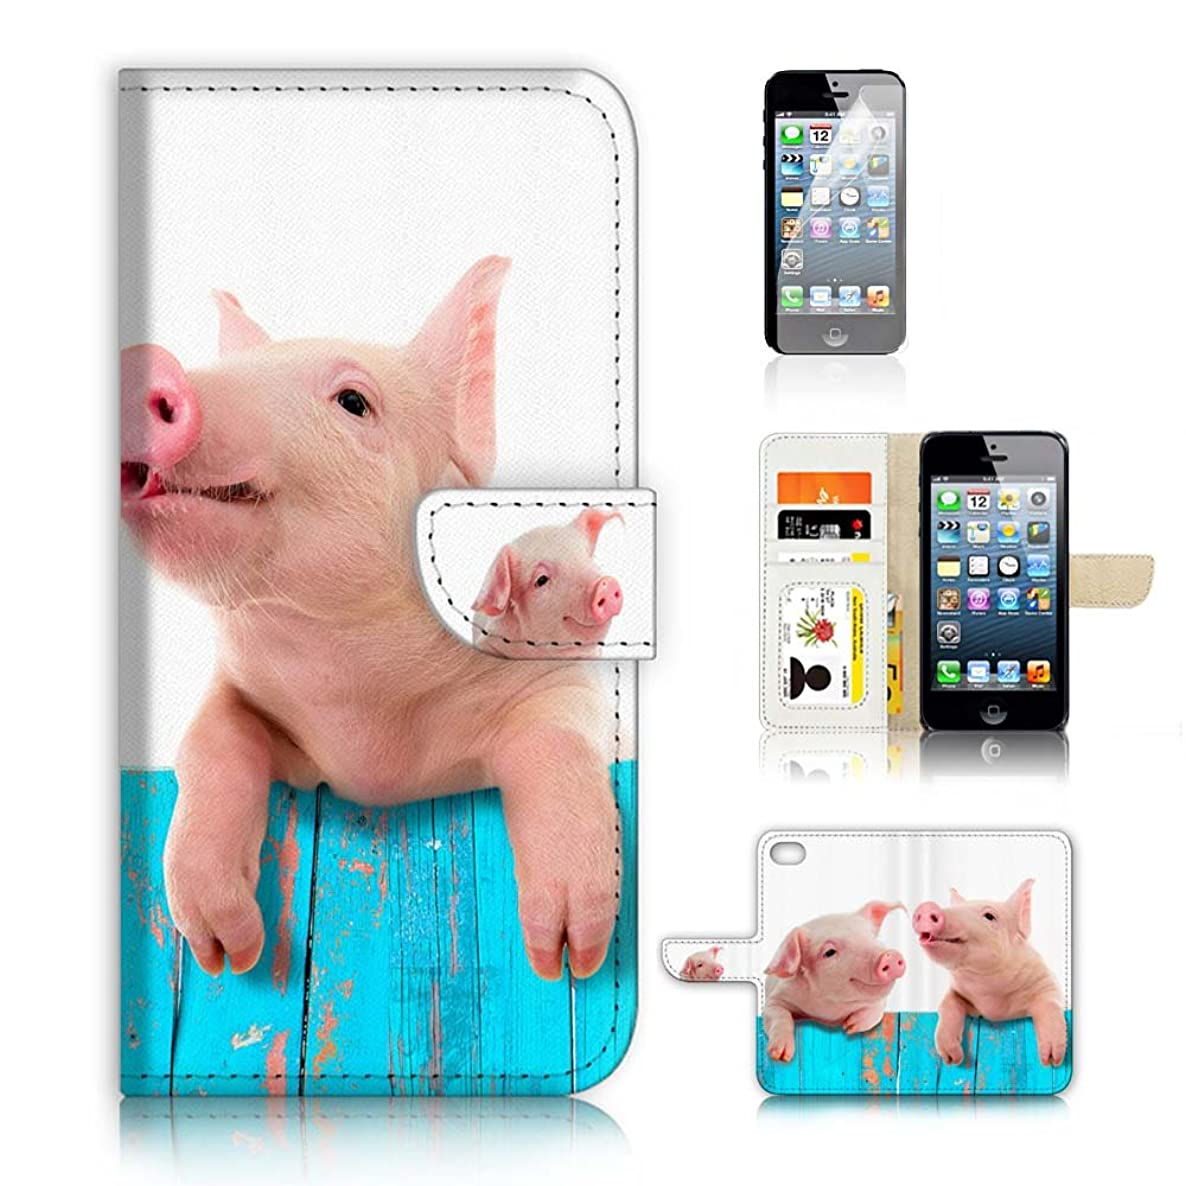 ( For iPhone 5 5S / iPhone SE ) Flip Wallet Case Cover and Screen Protector Bundle A8645 Cute Baby Pig